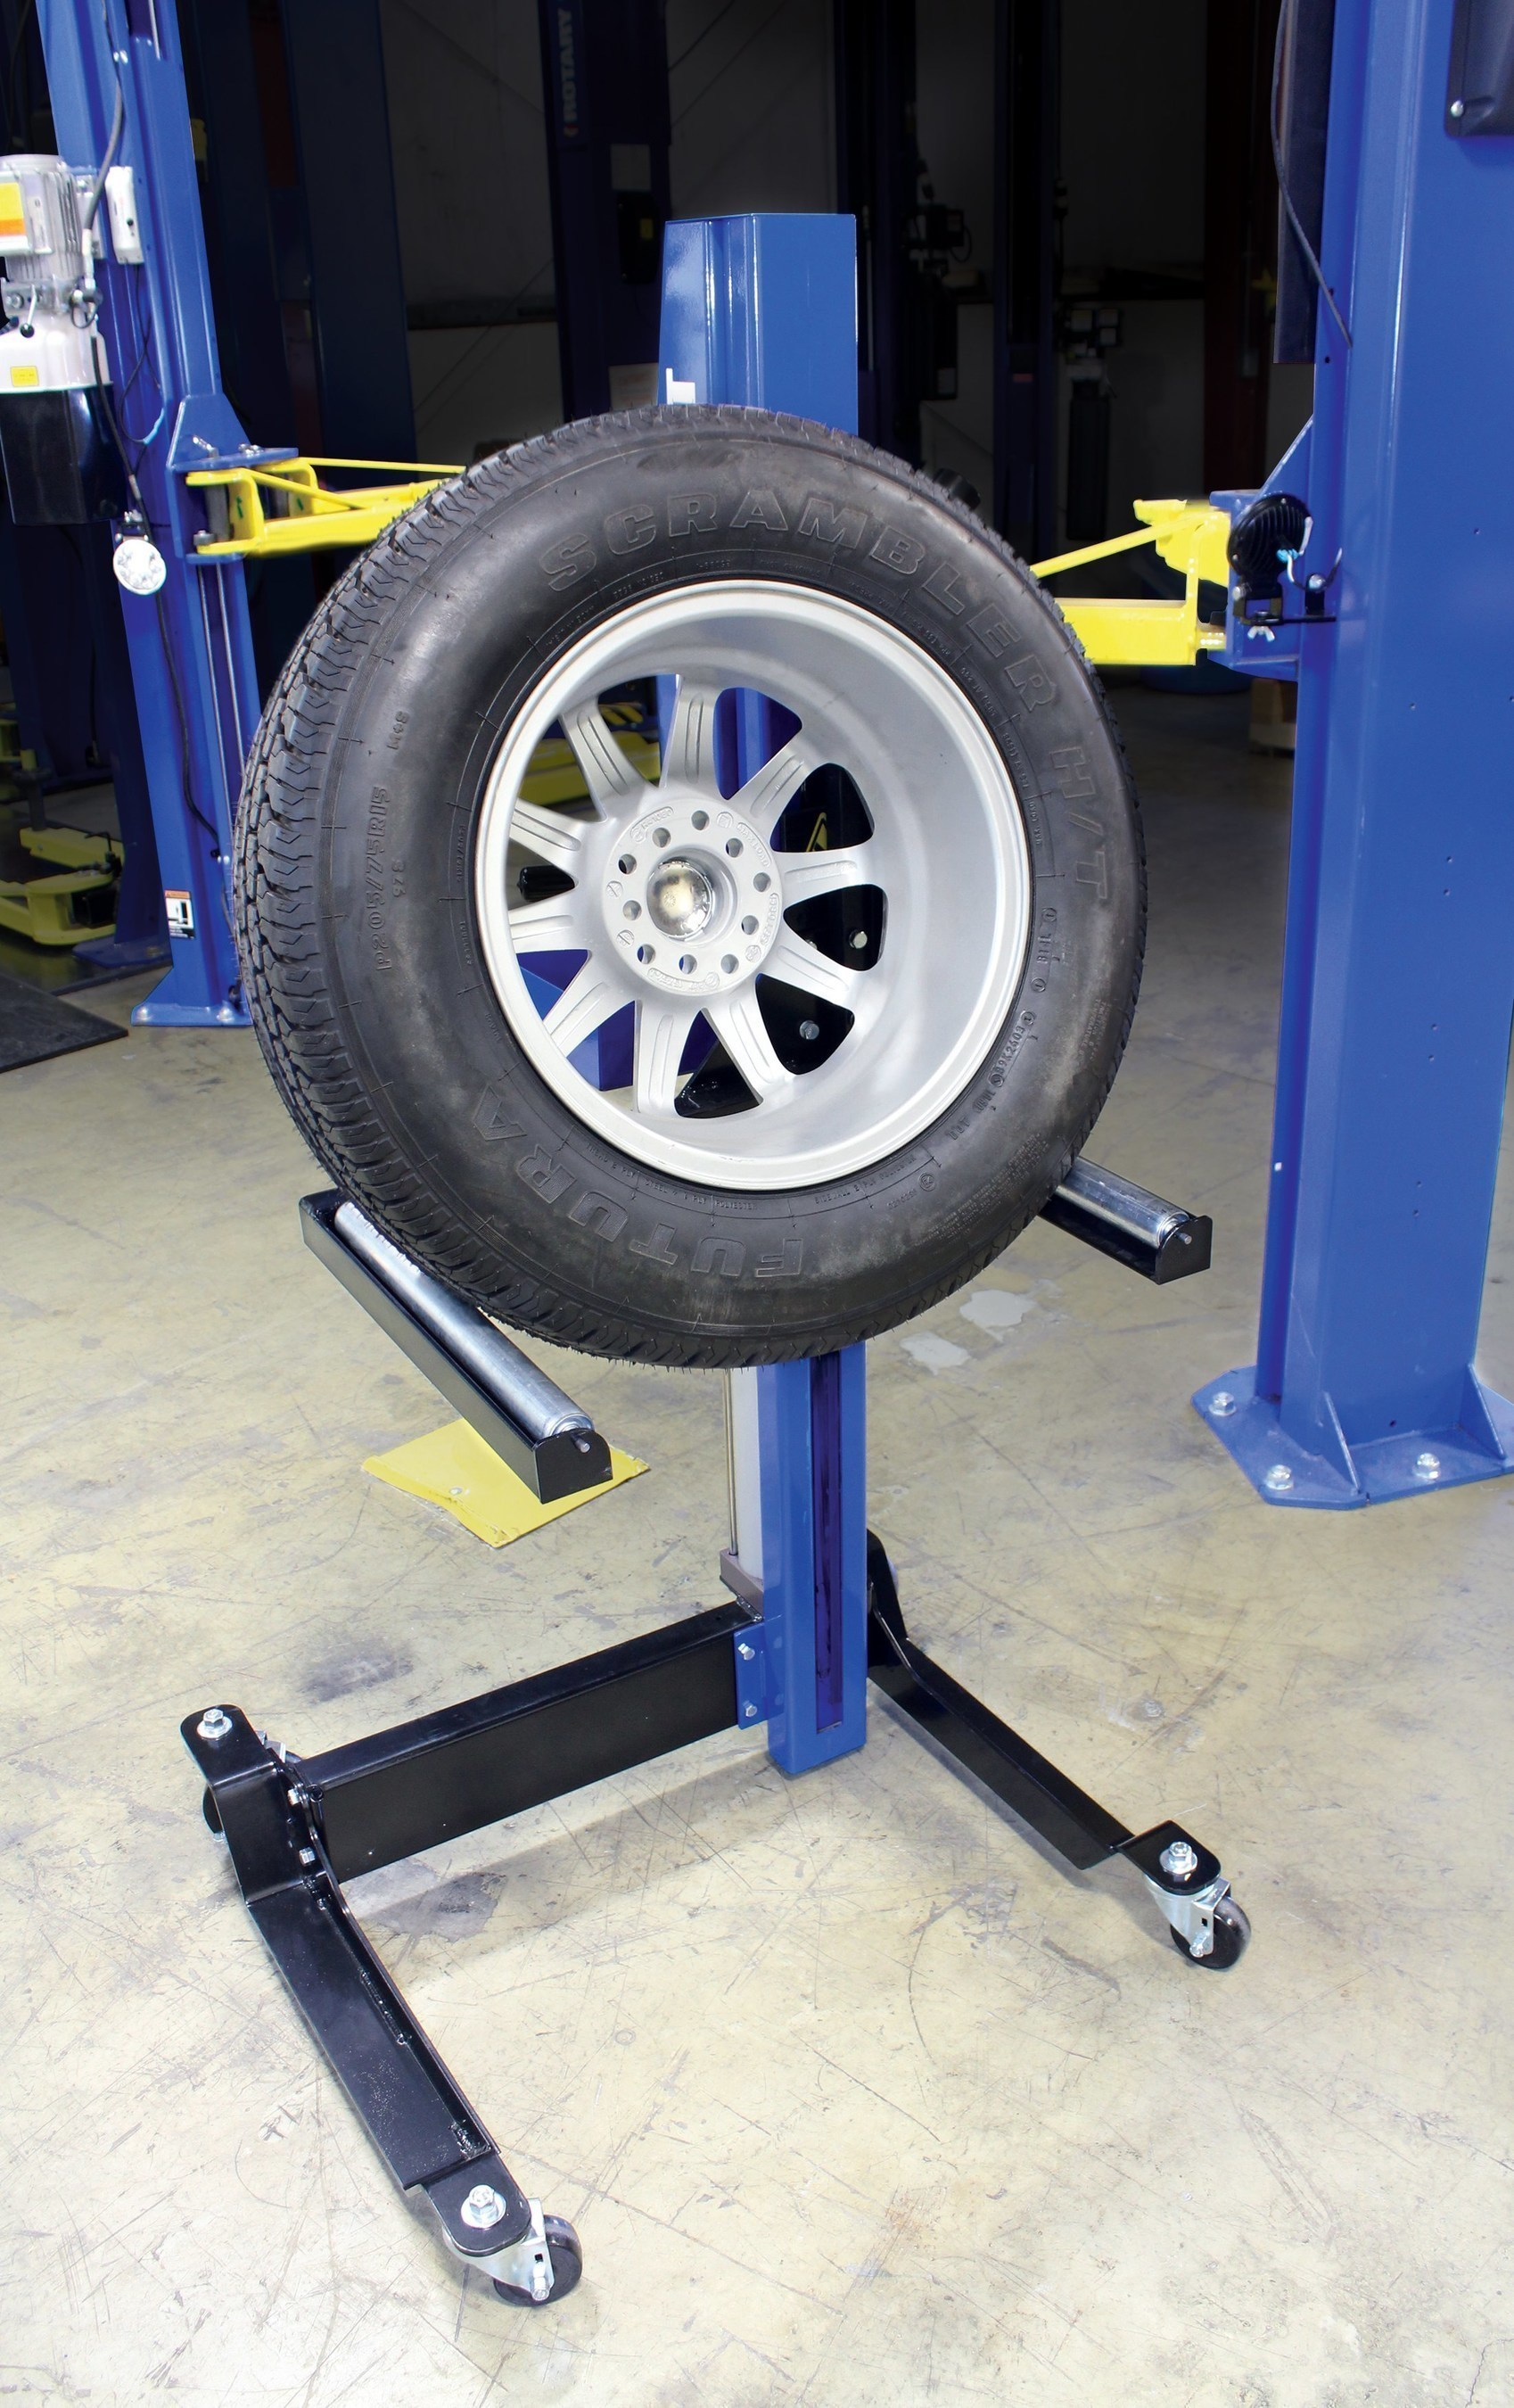 Auto Lift Safety : Top vehicle lift safety tips from rotary